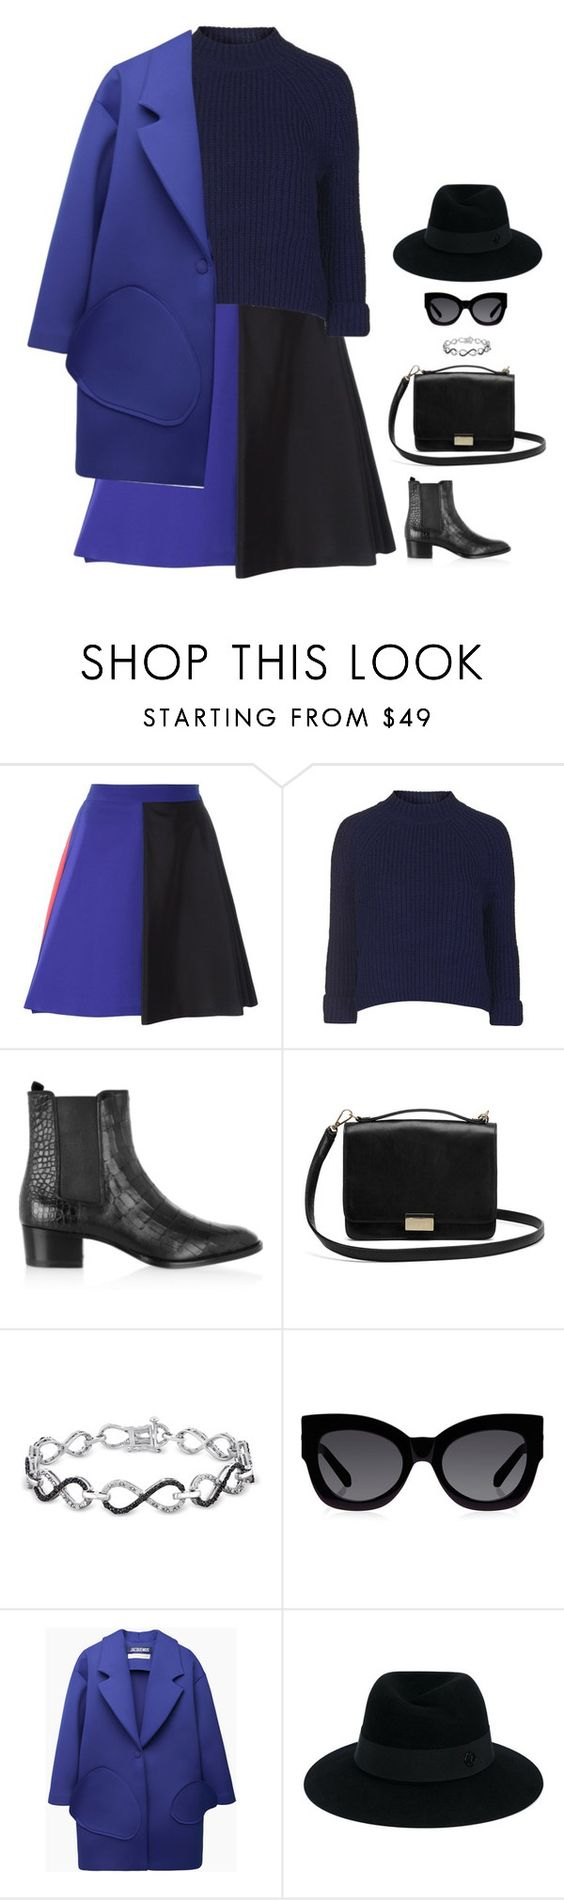 """#2816"" by azaliyan ❤ liked on Polyvore featuring MSGM, Topshop, Yves Saint Laurent, Lauren Merkin, Ice, Karen Walker, Jacquemus and Maison Michel"